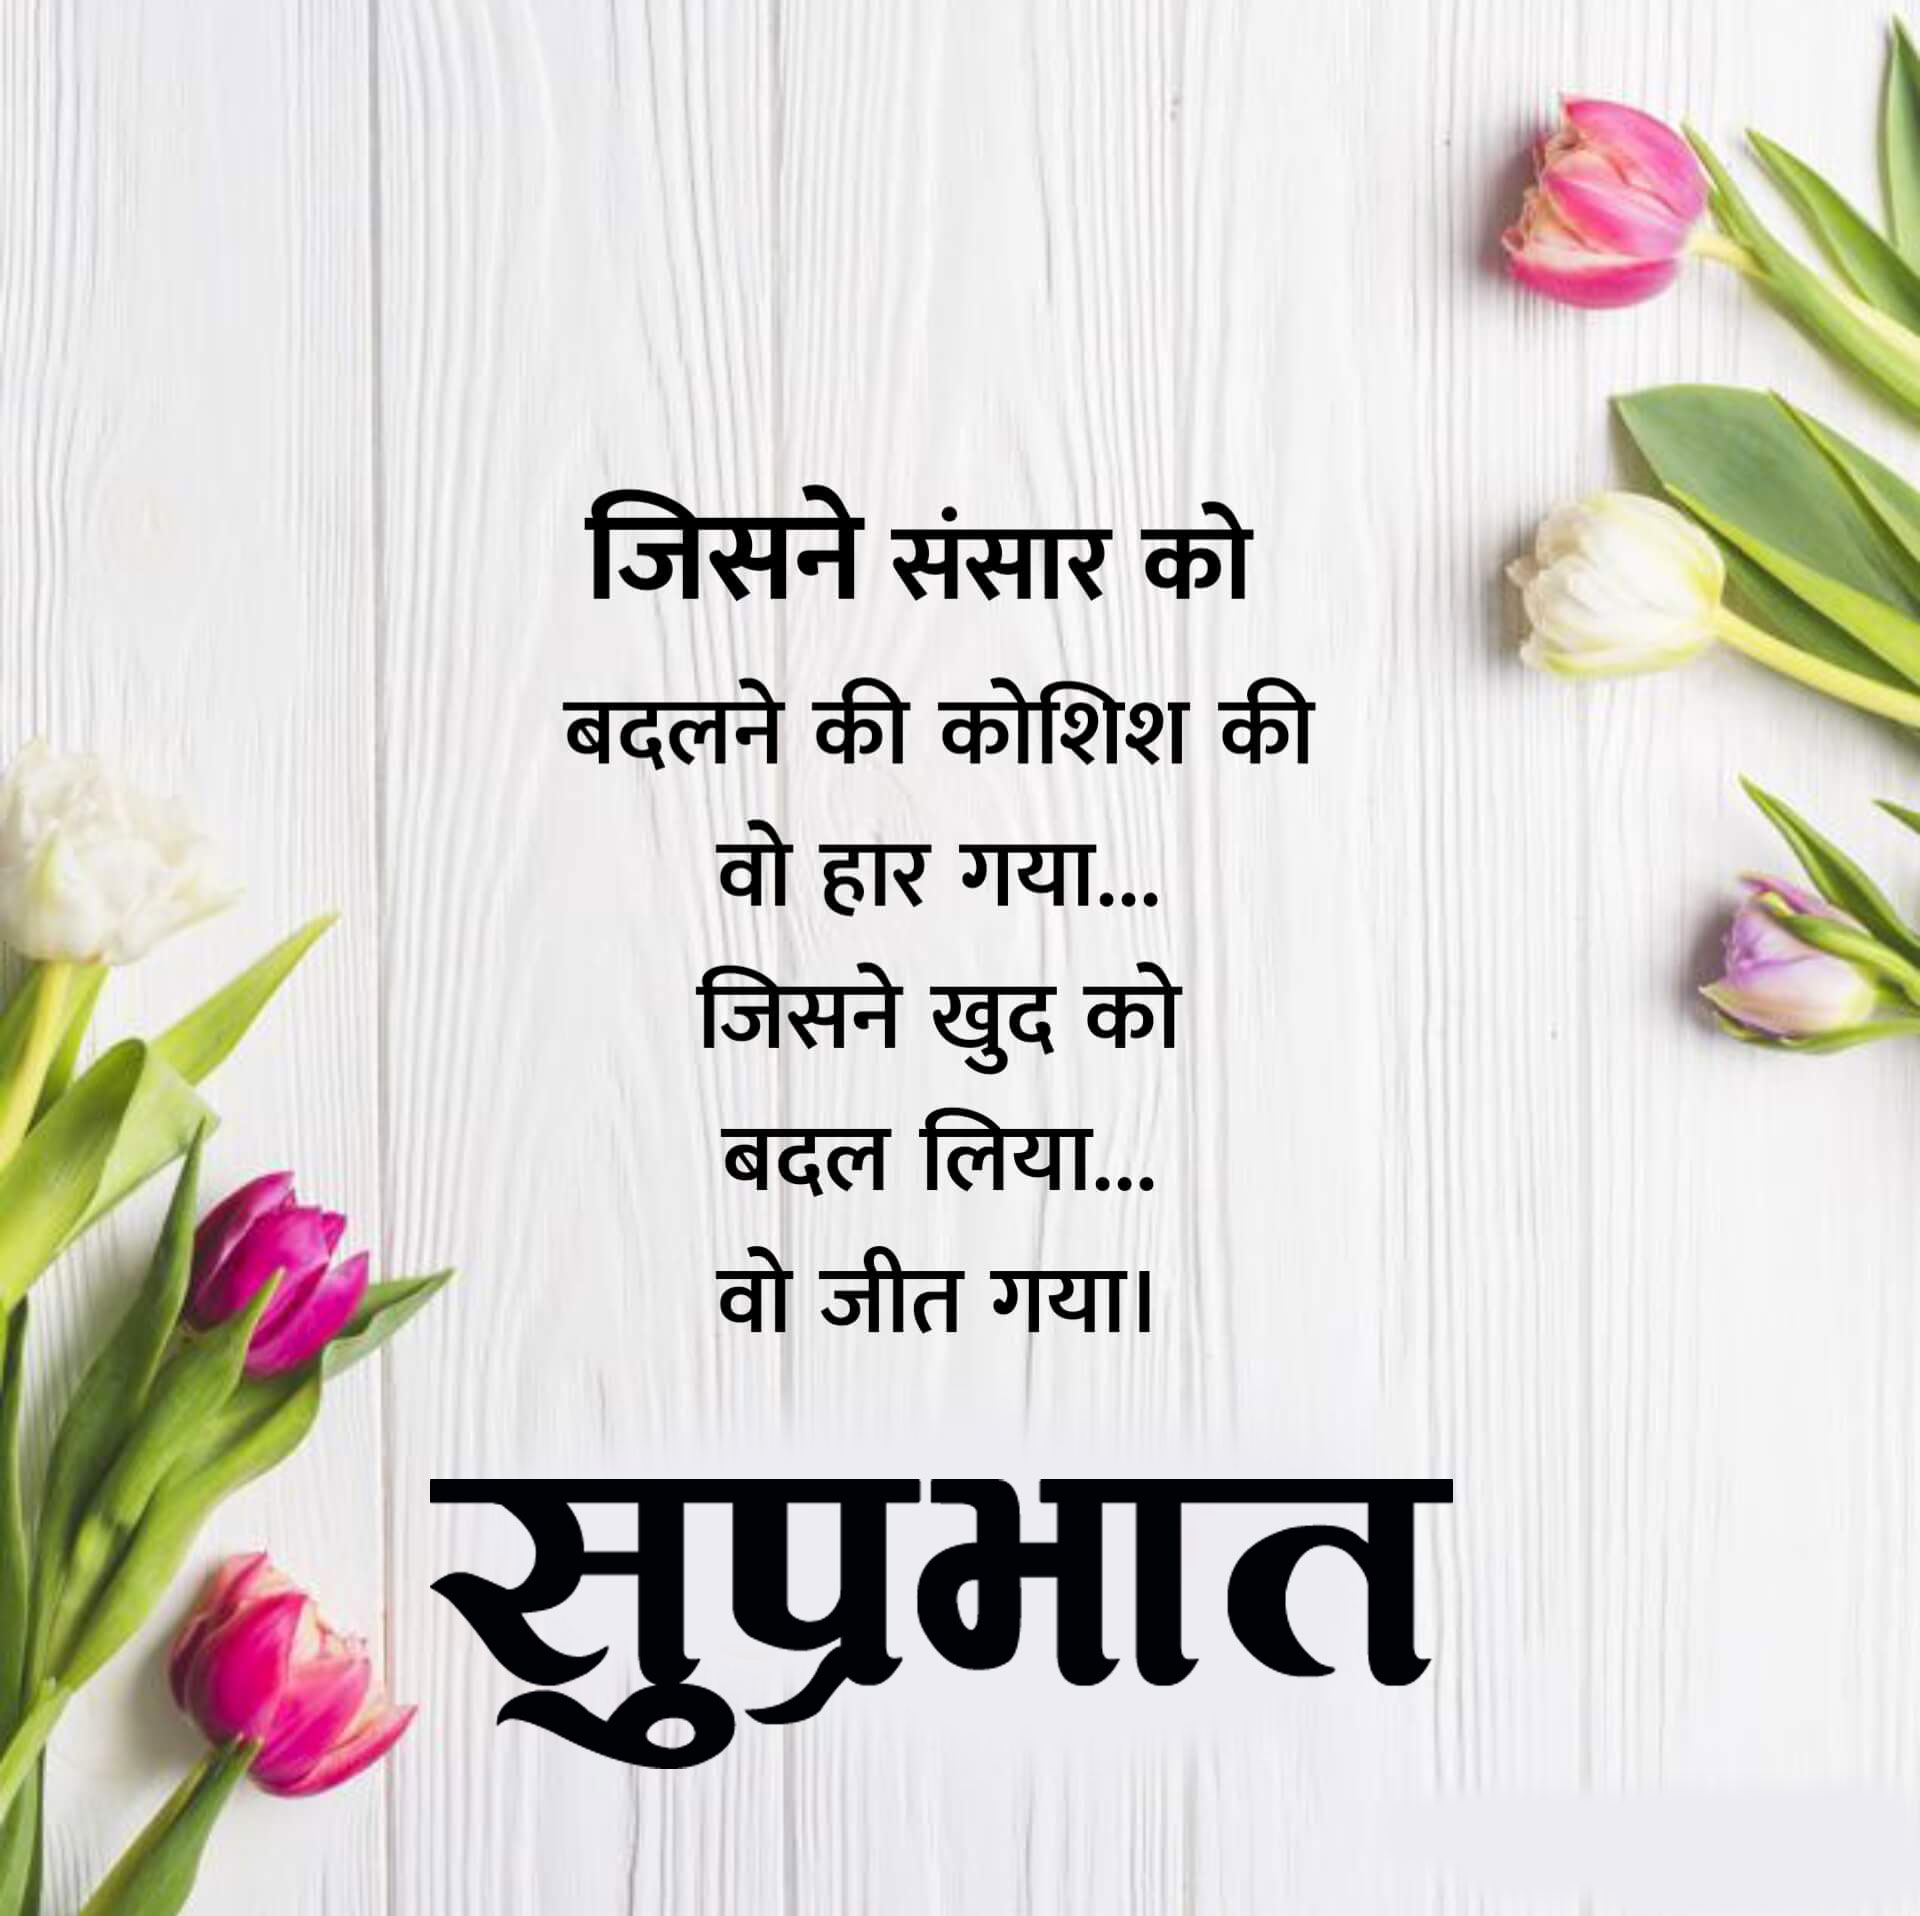 New Beautiful Suprabhat Images for status